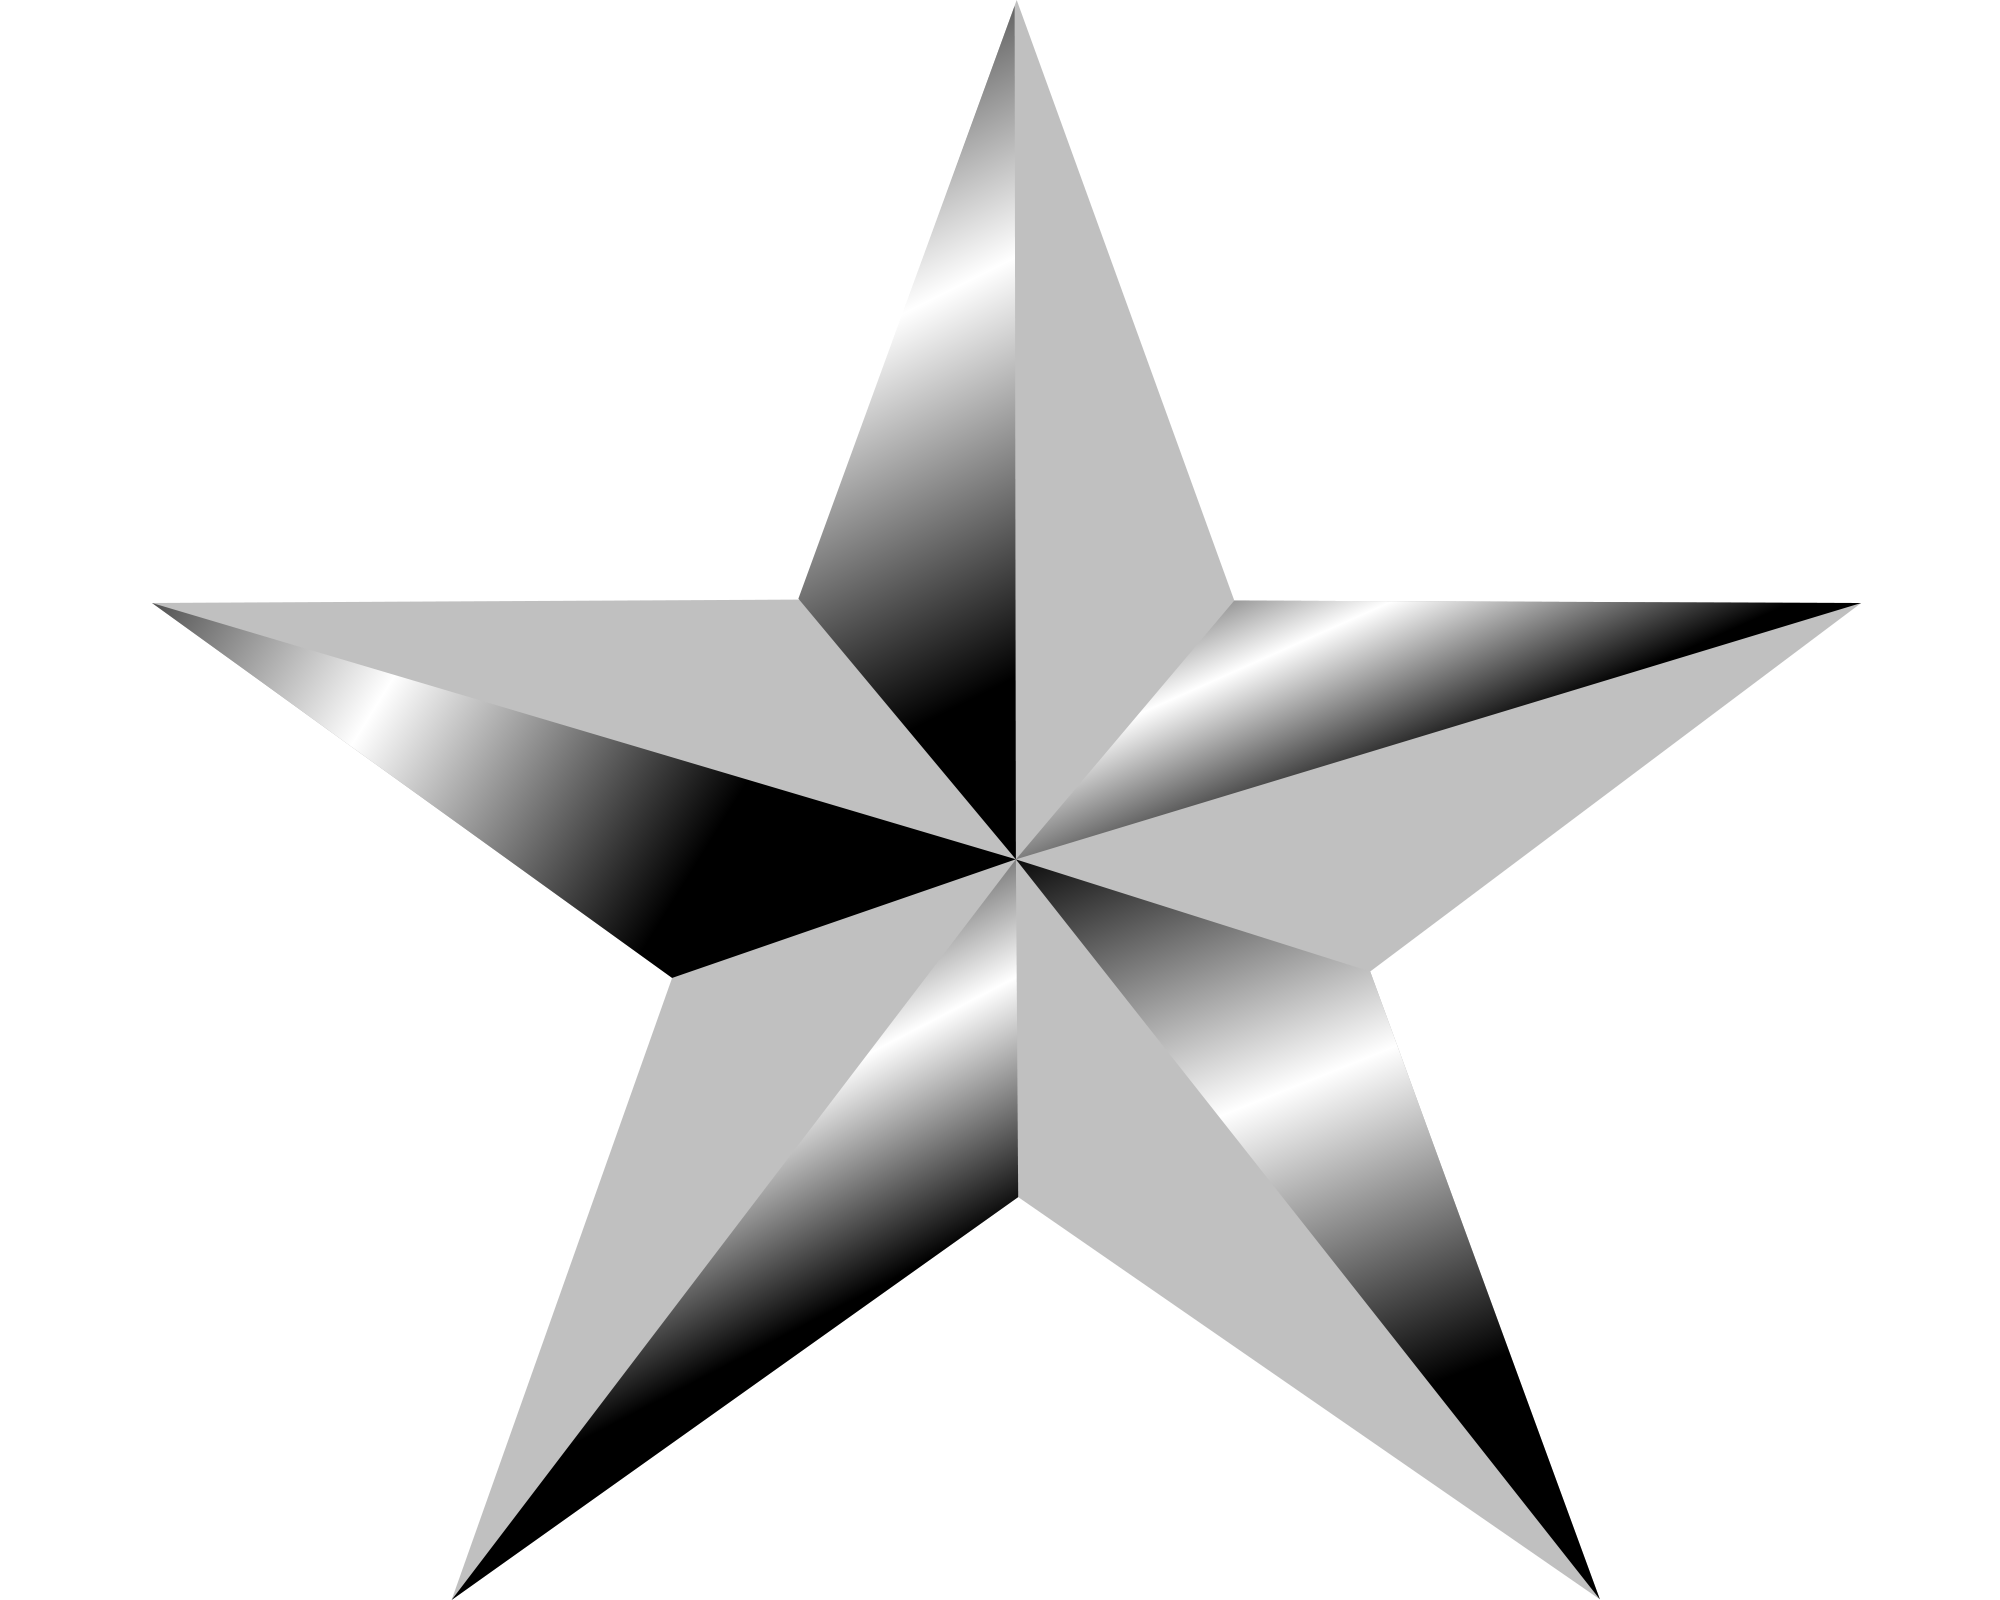 General star clipart svg free download Silver Star PNG Image - PurePNG   Free transparent CC0 PNG Image Library svg free download